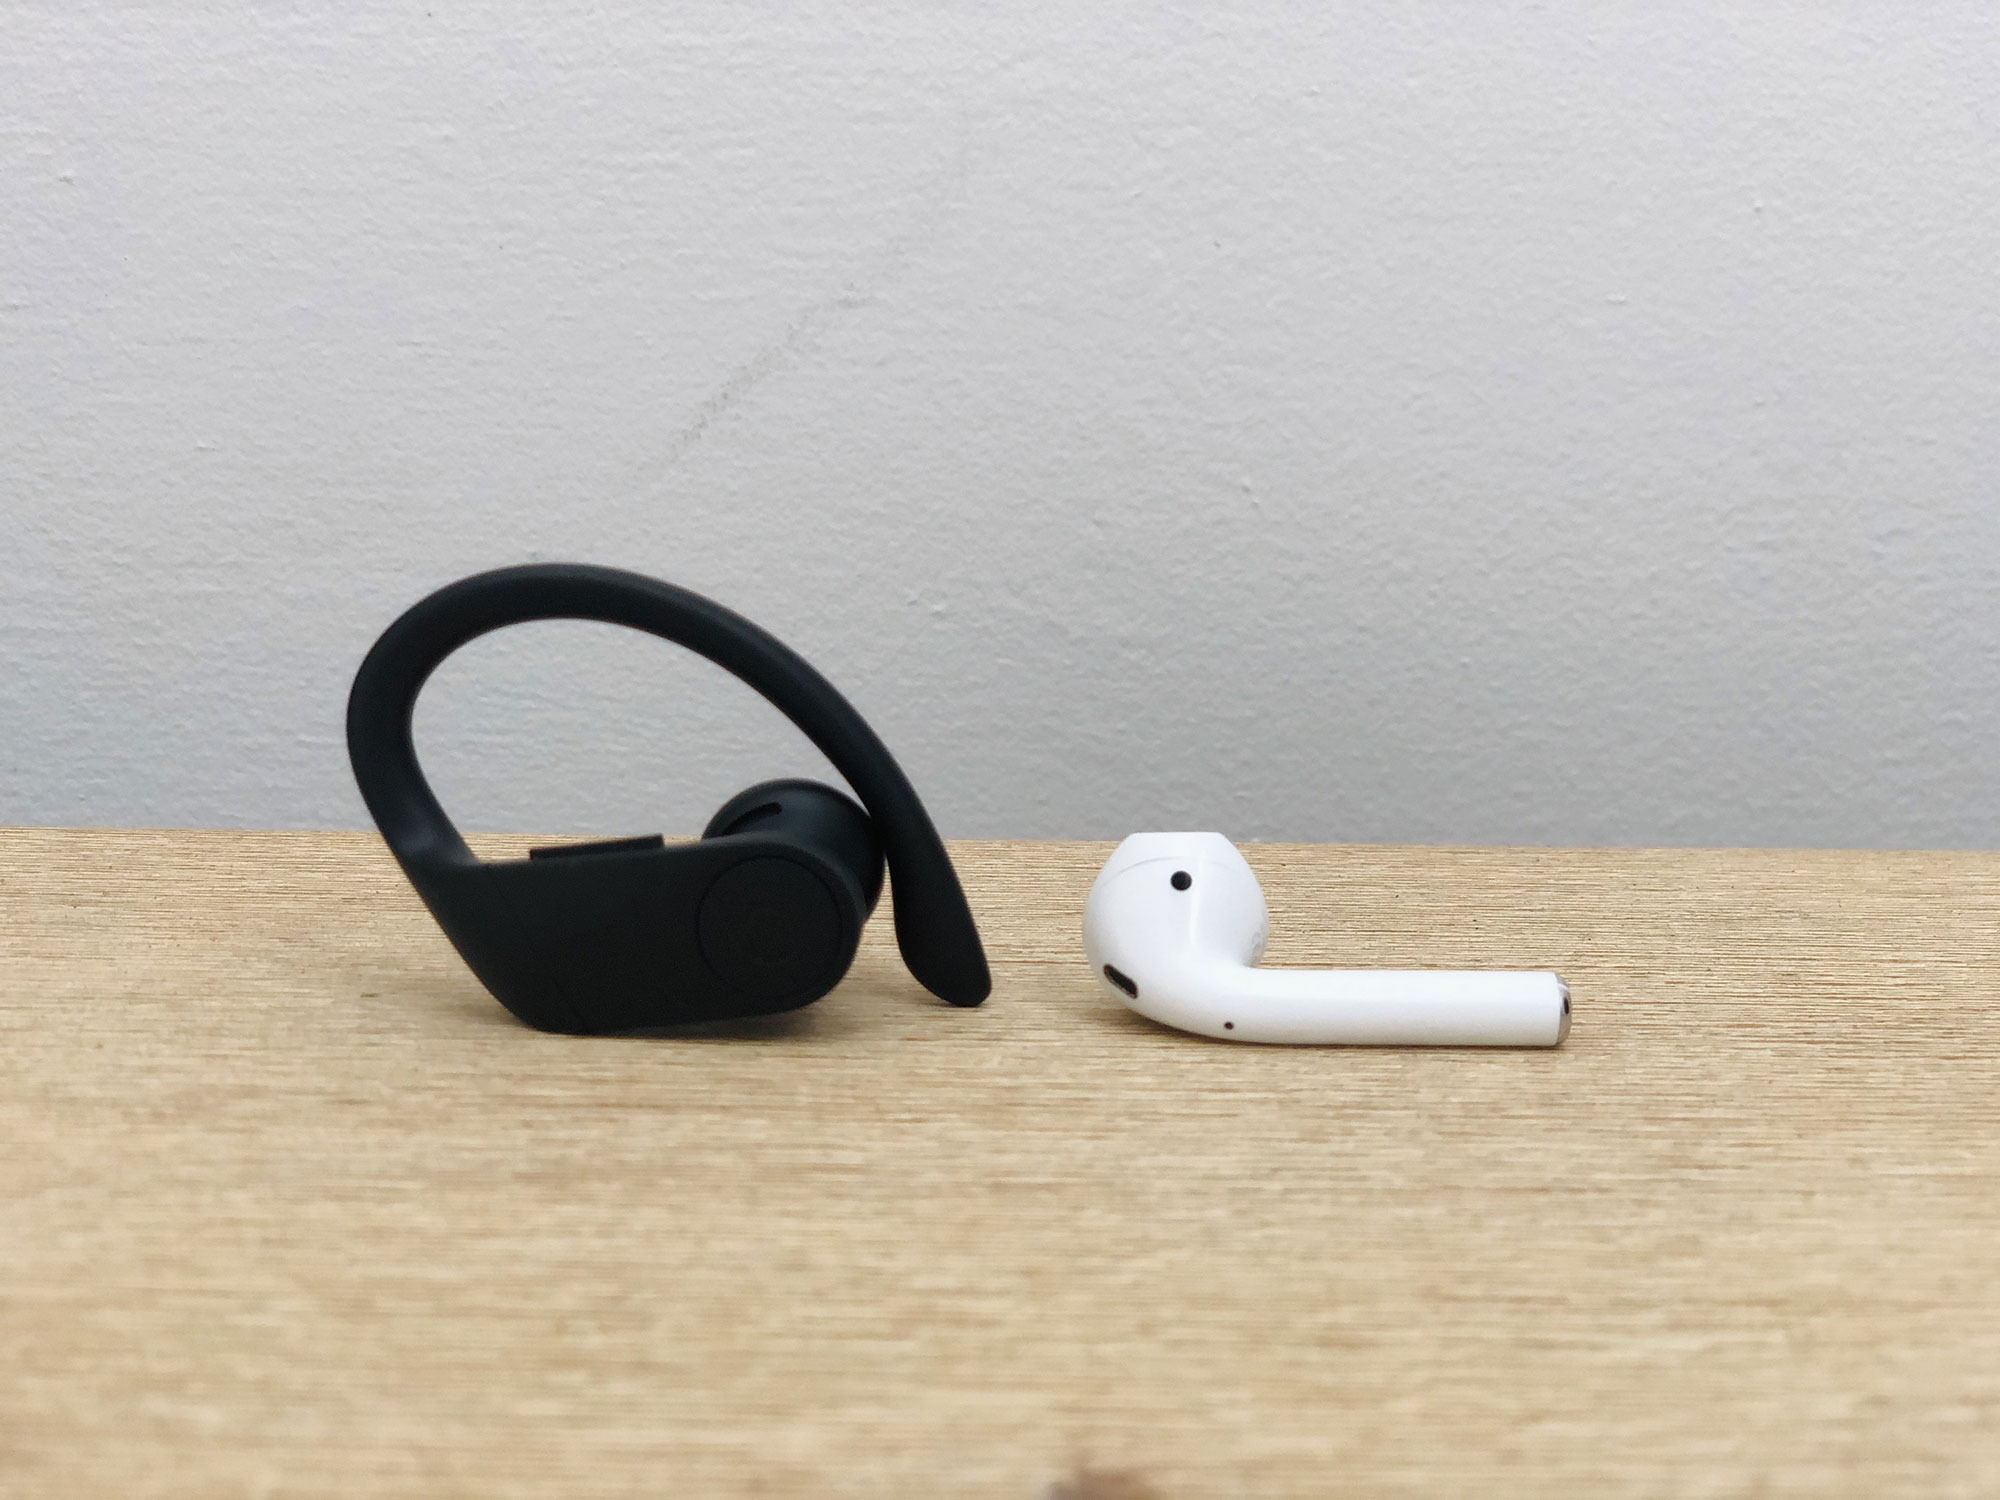 Apple AirPods and Powerbeats Pro side by side